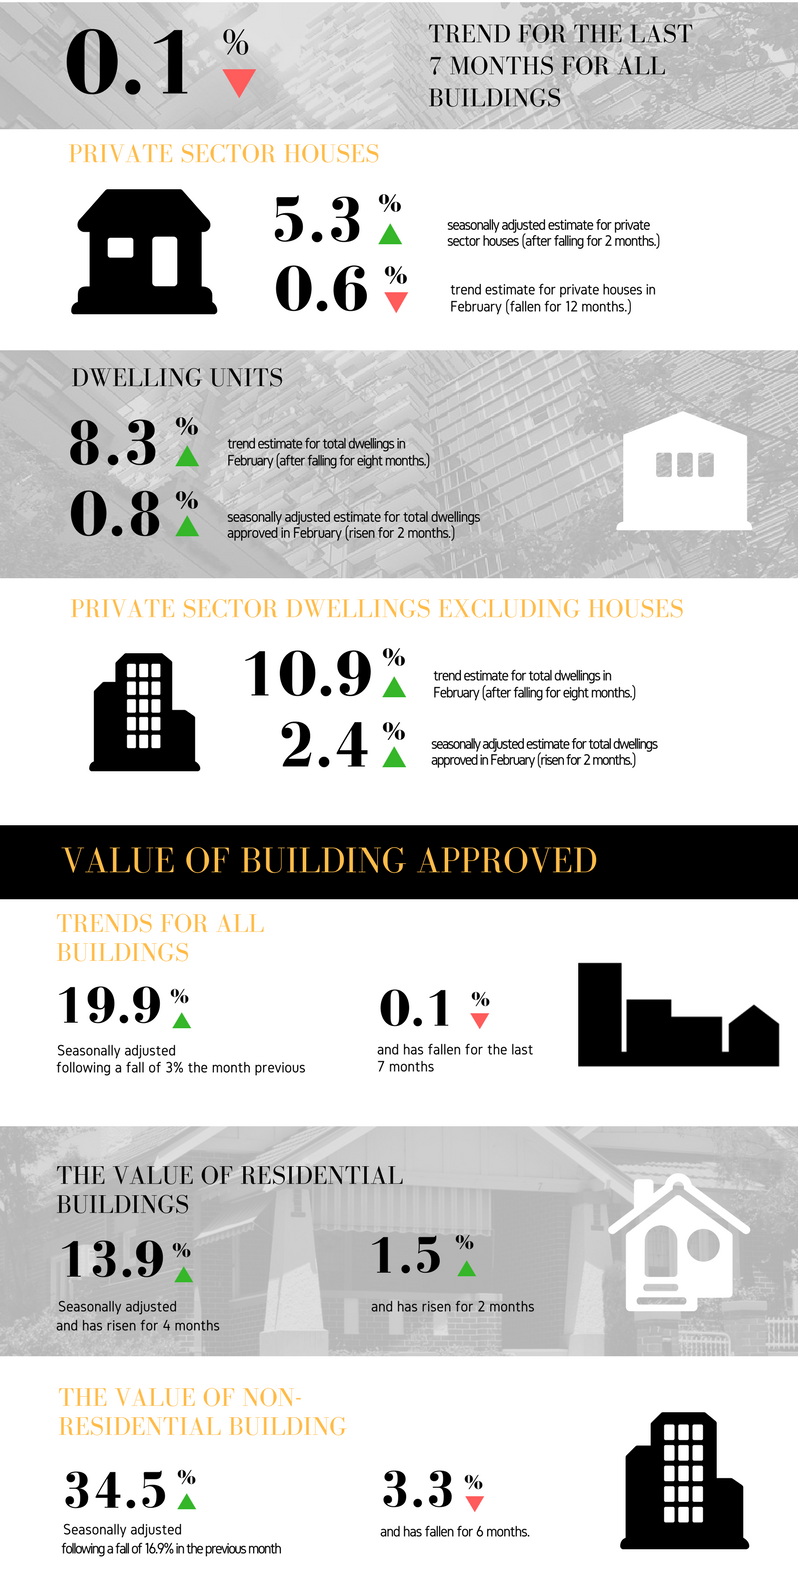 The February Key Points Include: Number of Dwelling Units The trend estimate for total dwellings approved rose 0.8% in February after falling for eight months. The seasonally adjusted estimate for total dwellings approved rose 8.3% in February and has risen for two months. Private Sector Houses The trend estimate for private sector houses approved fell 0.6% in February and has fallen for 12 months. The seasonally adjusted estimate for private sector houses rose 5.3% in February after falling for two months. Private Sector Dwellings Excluding Houses The trend estimate for private sector dwellings excluding houses rose 2.4% in February and has risen for two months. The seasonally adjusted estimate for private sector dwellings excluding houses rose 10.9% in February and has risen for two months. Value of Building Approved The trend estimate of the value of total building approved fell 0.1% in February and has fallen for seven months. The value of residential building rose 1.5% and has risen for two months. The value of non-residential building fell 3.3% and has fallen for six months. The seasonally adjusted estimate of the value of total building approved rose 19.9% in February following a fall of 3.0% in the previous month. The value of residential building rose 13.9% and has risen for four months. The value of non-residential building rose 34.5% following a fall of 16.9% in the previous month. Building approval statistics.